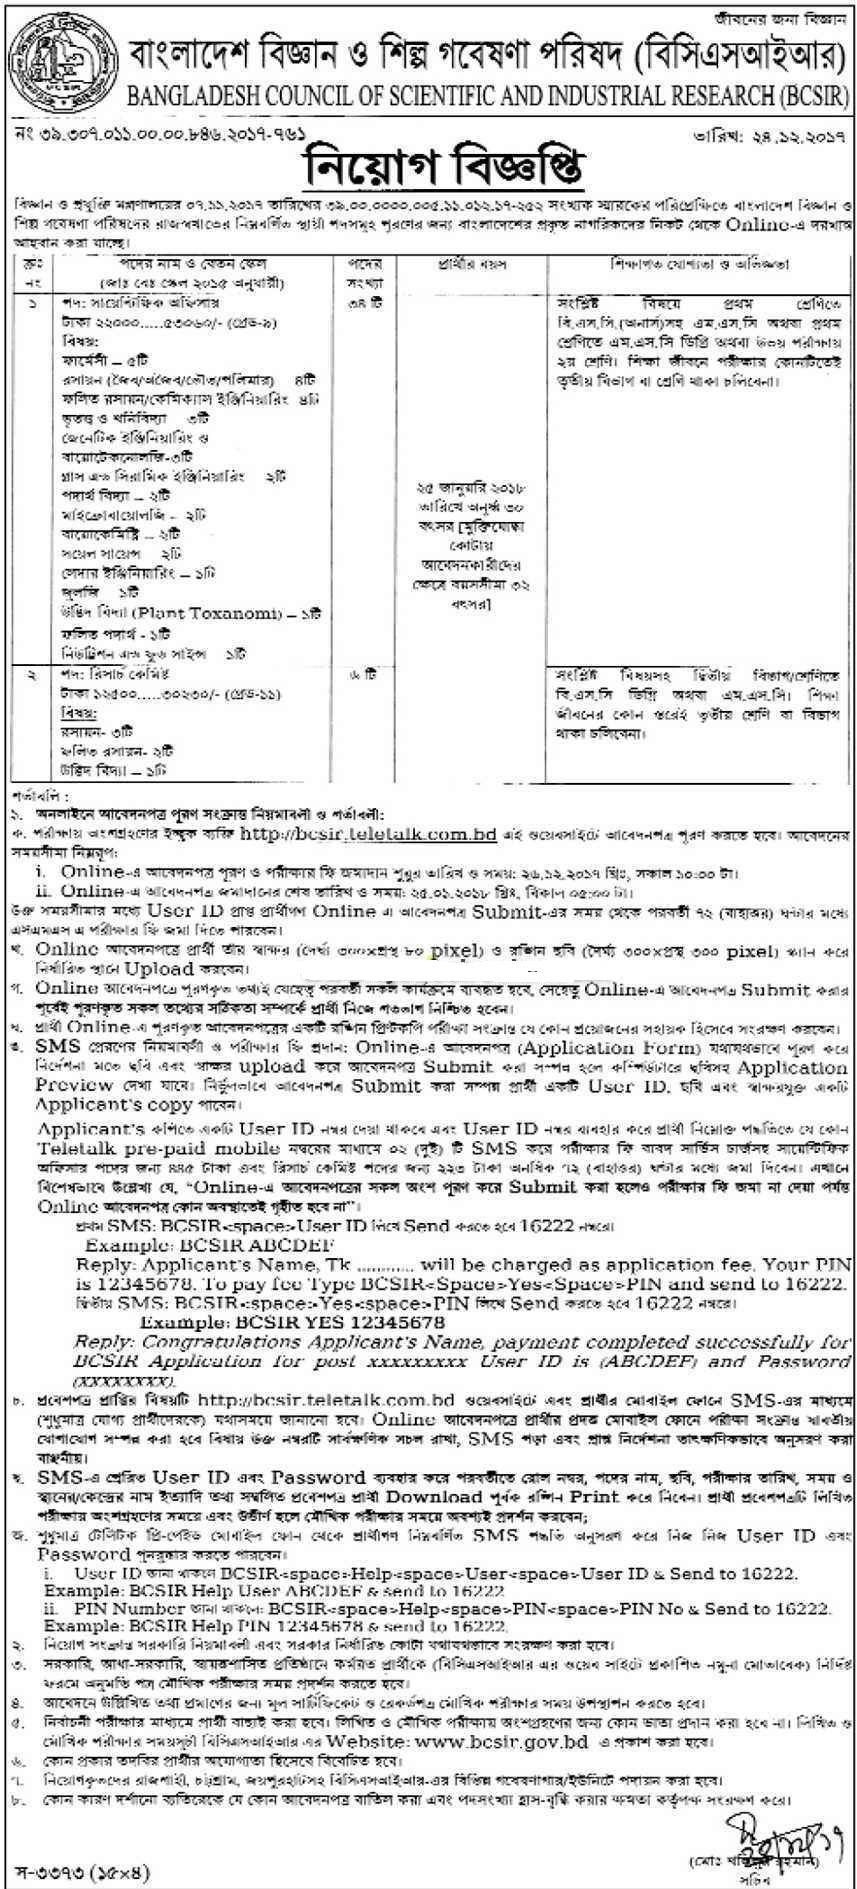 Bangladesh Council Of Scientific And Industrial Research BCSIR Job Circular